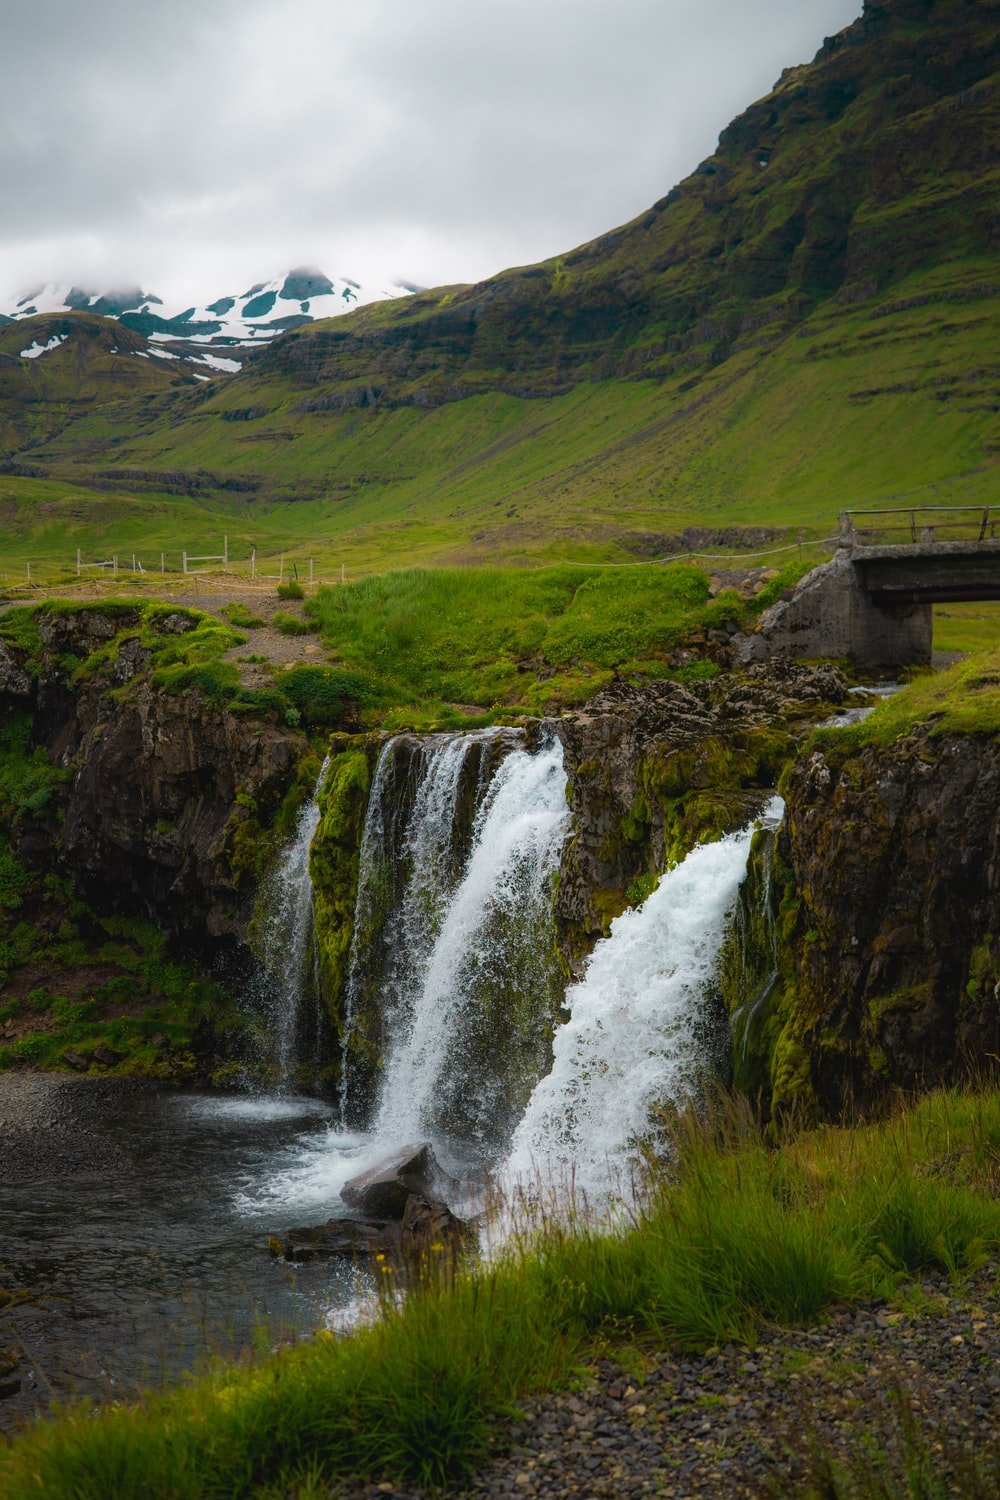 waterfalls on green grass covered hill during daytime